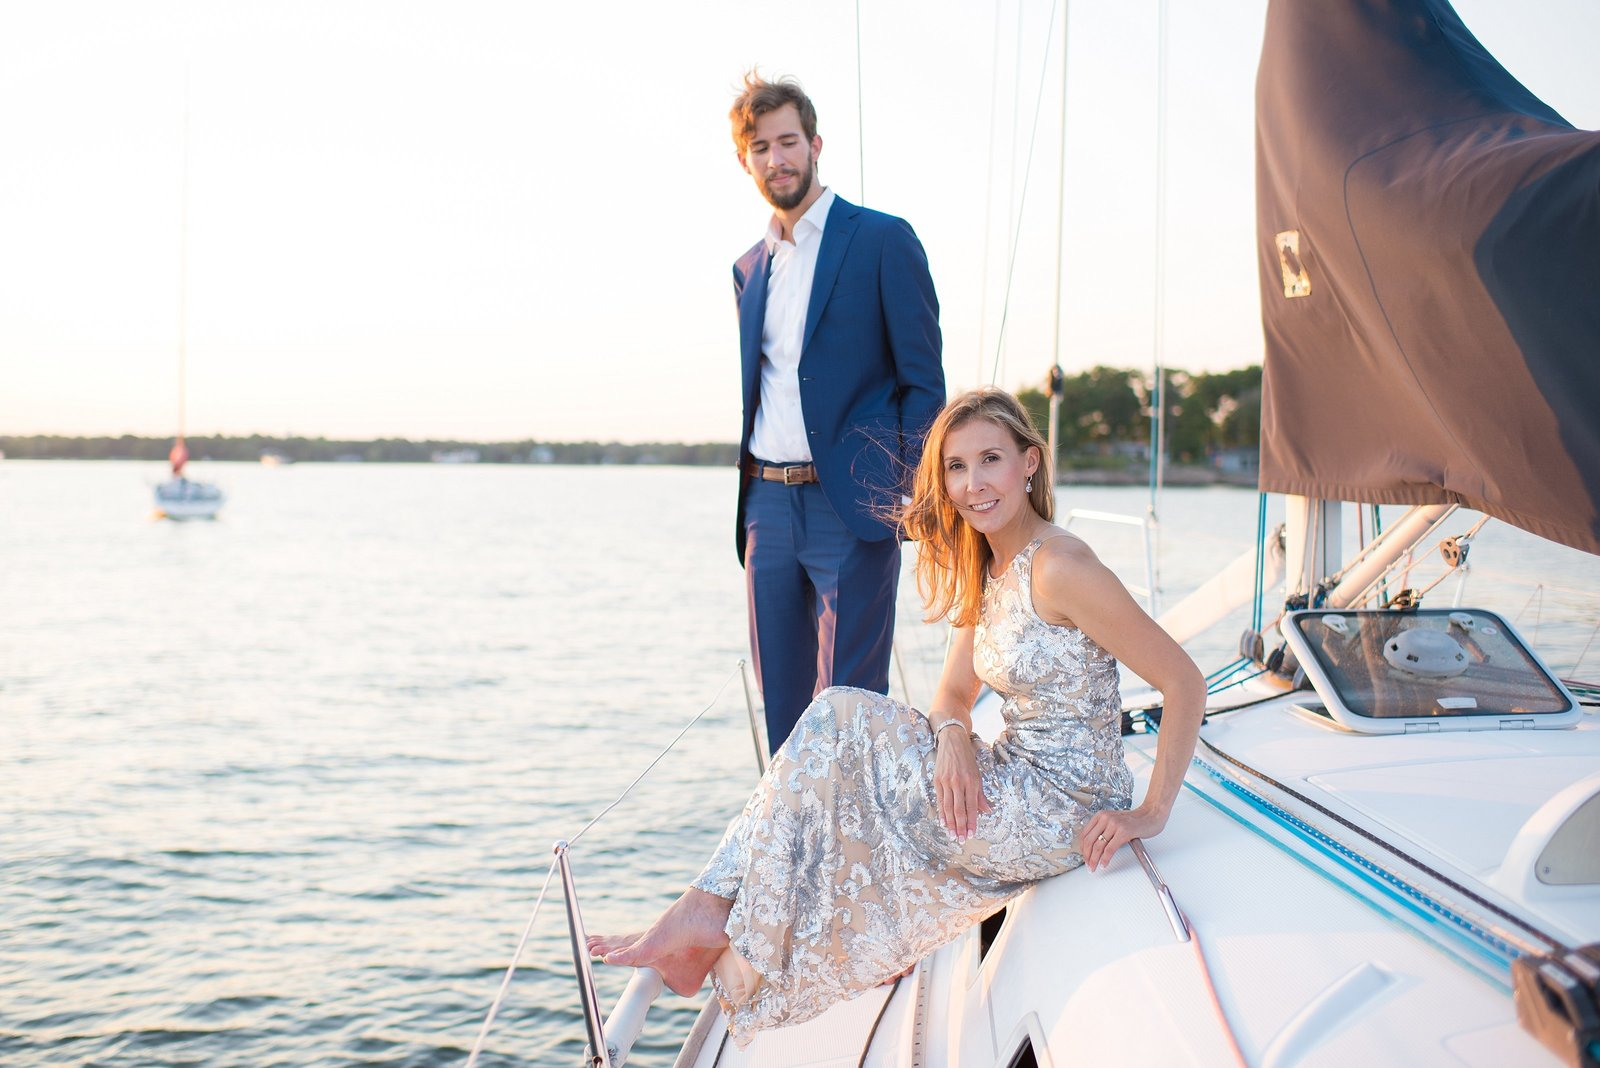 Bride and Groom on sailboat and water during sunset at The American Yacht Club in Rye, New York Photo